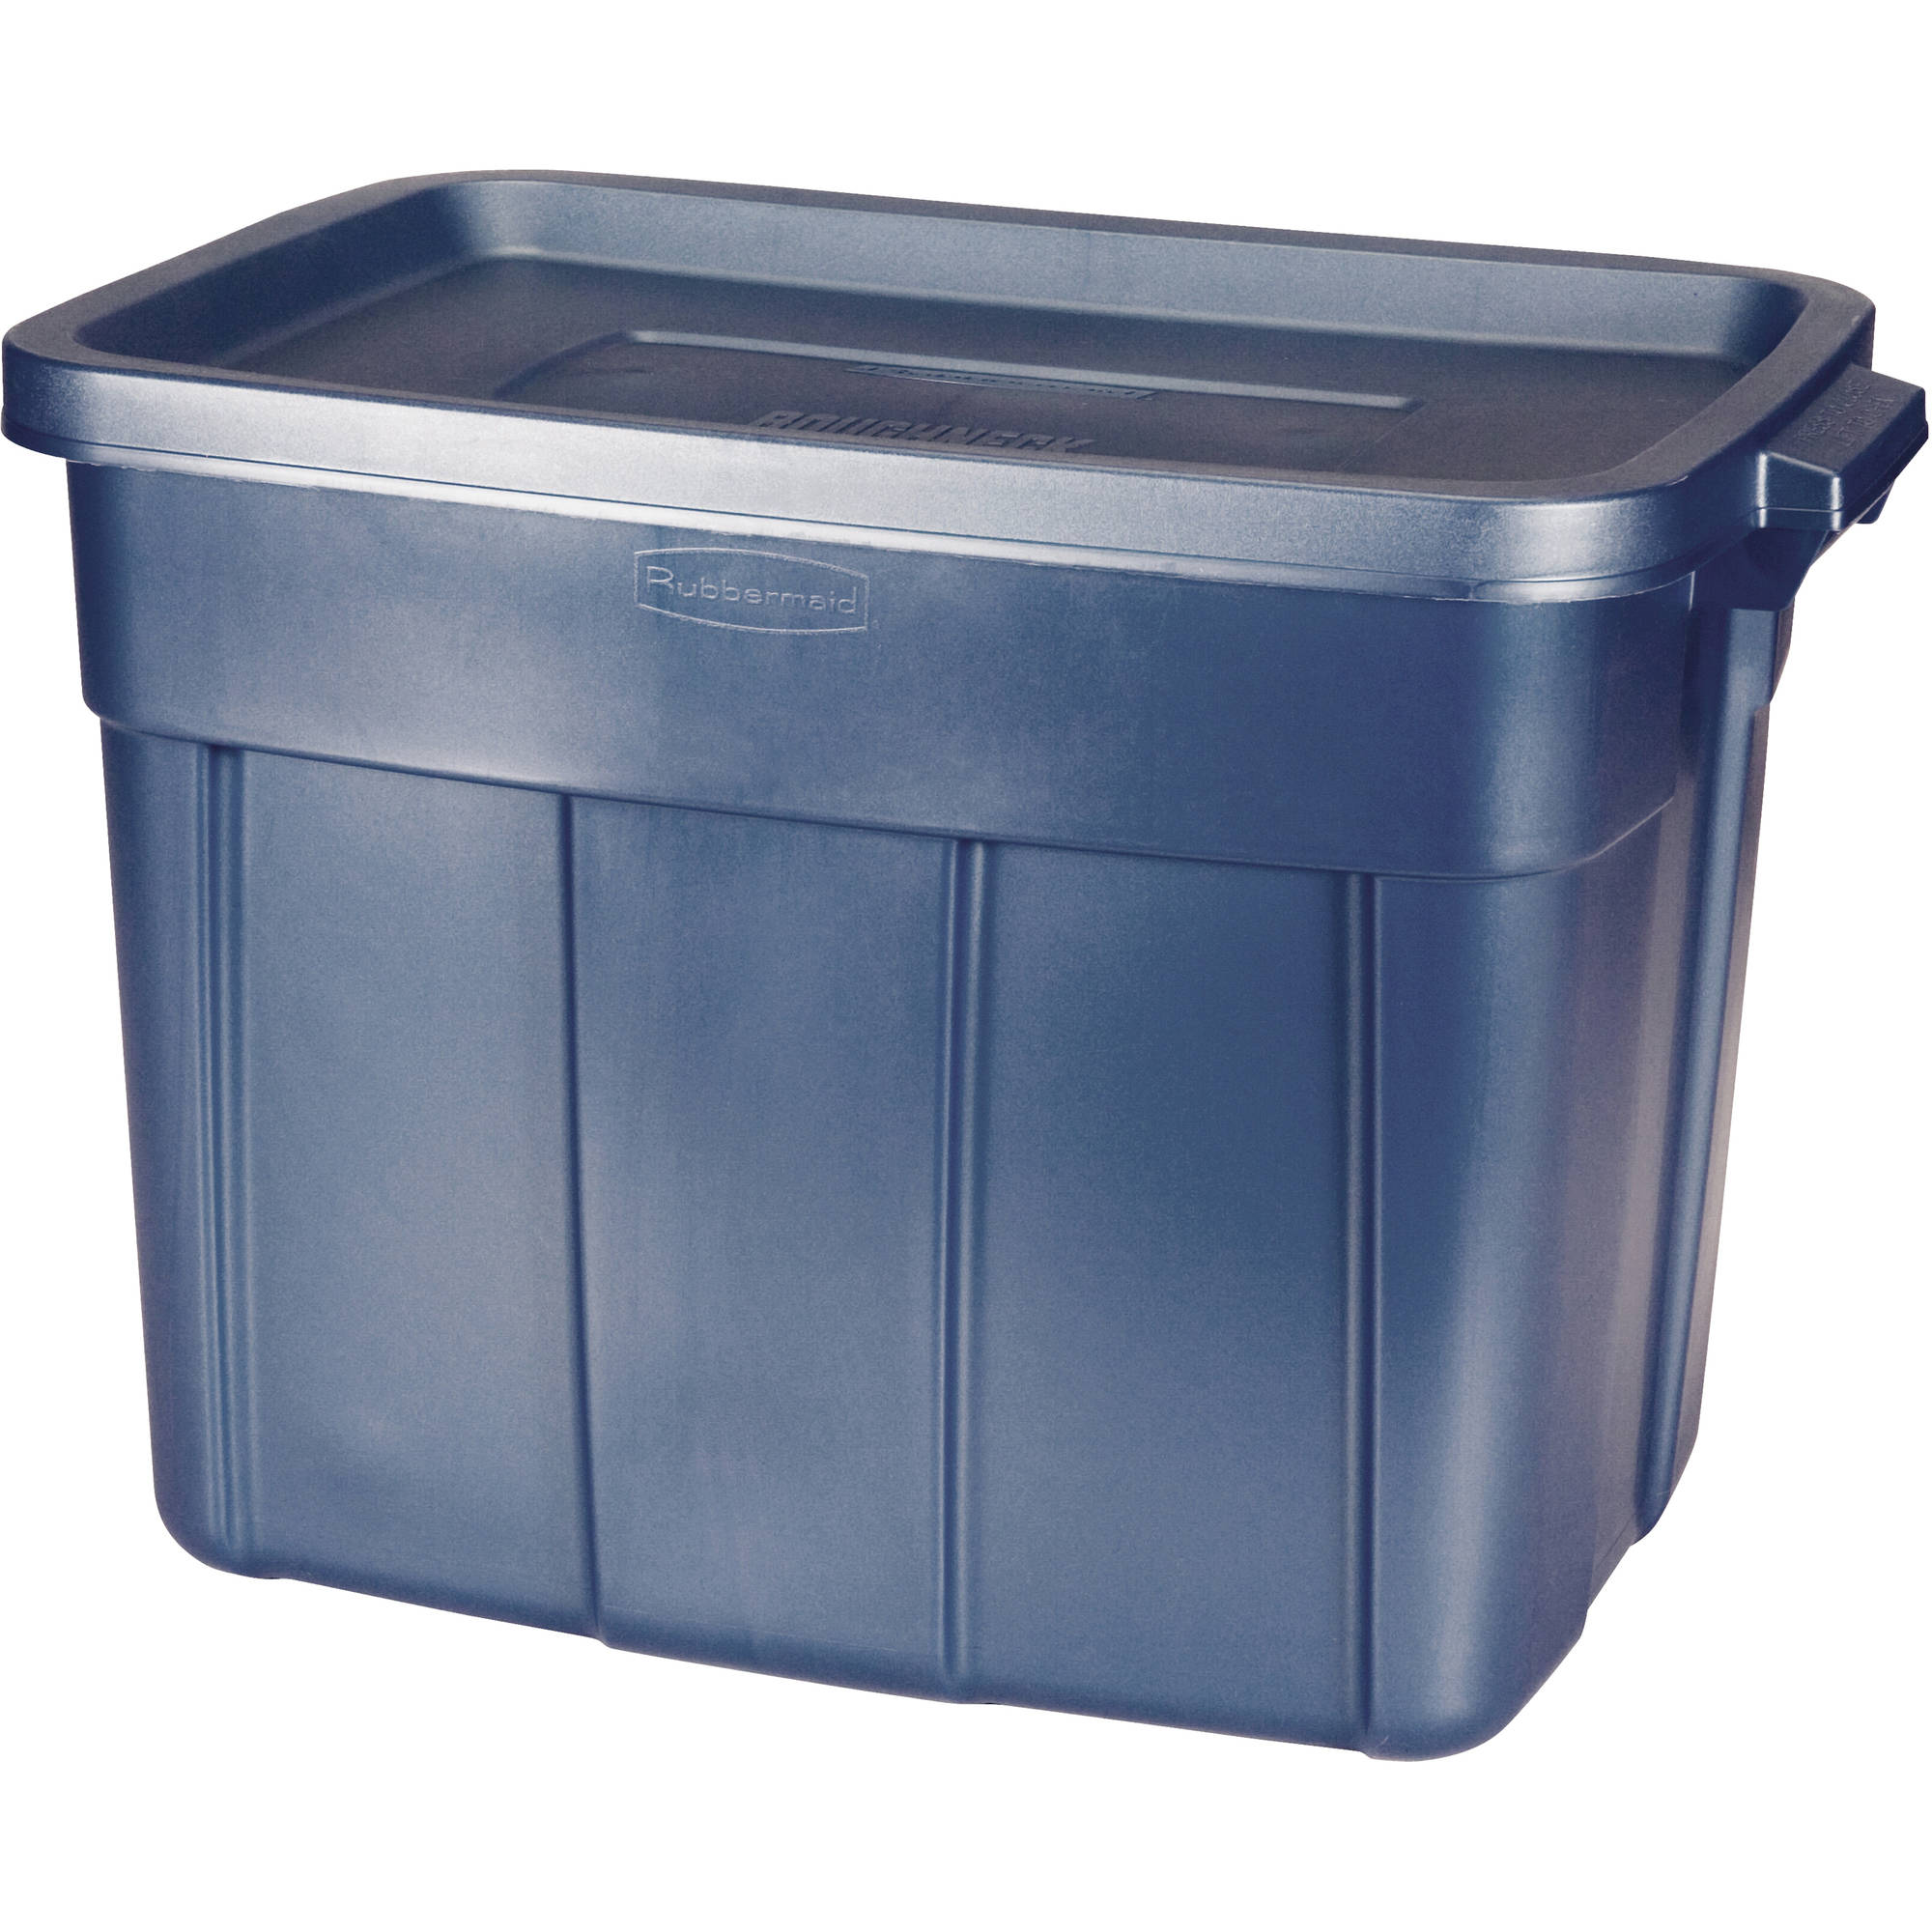 Rubbermaid Roughneck Storage Tote Bins, 72 Qt (18 Gal), Blue, Set of 12